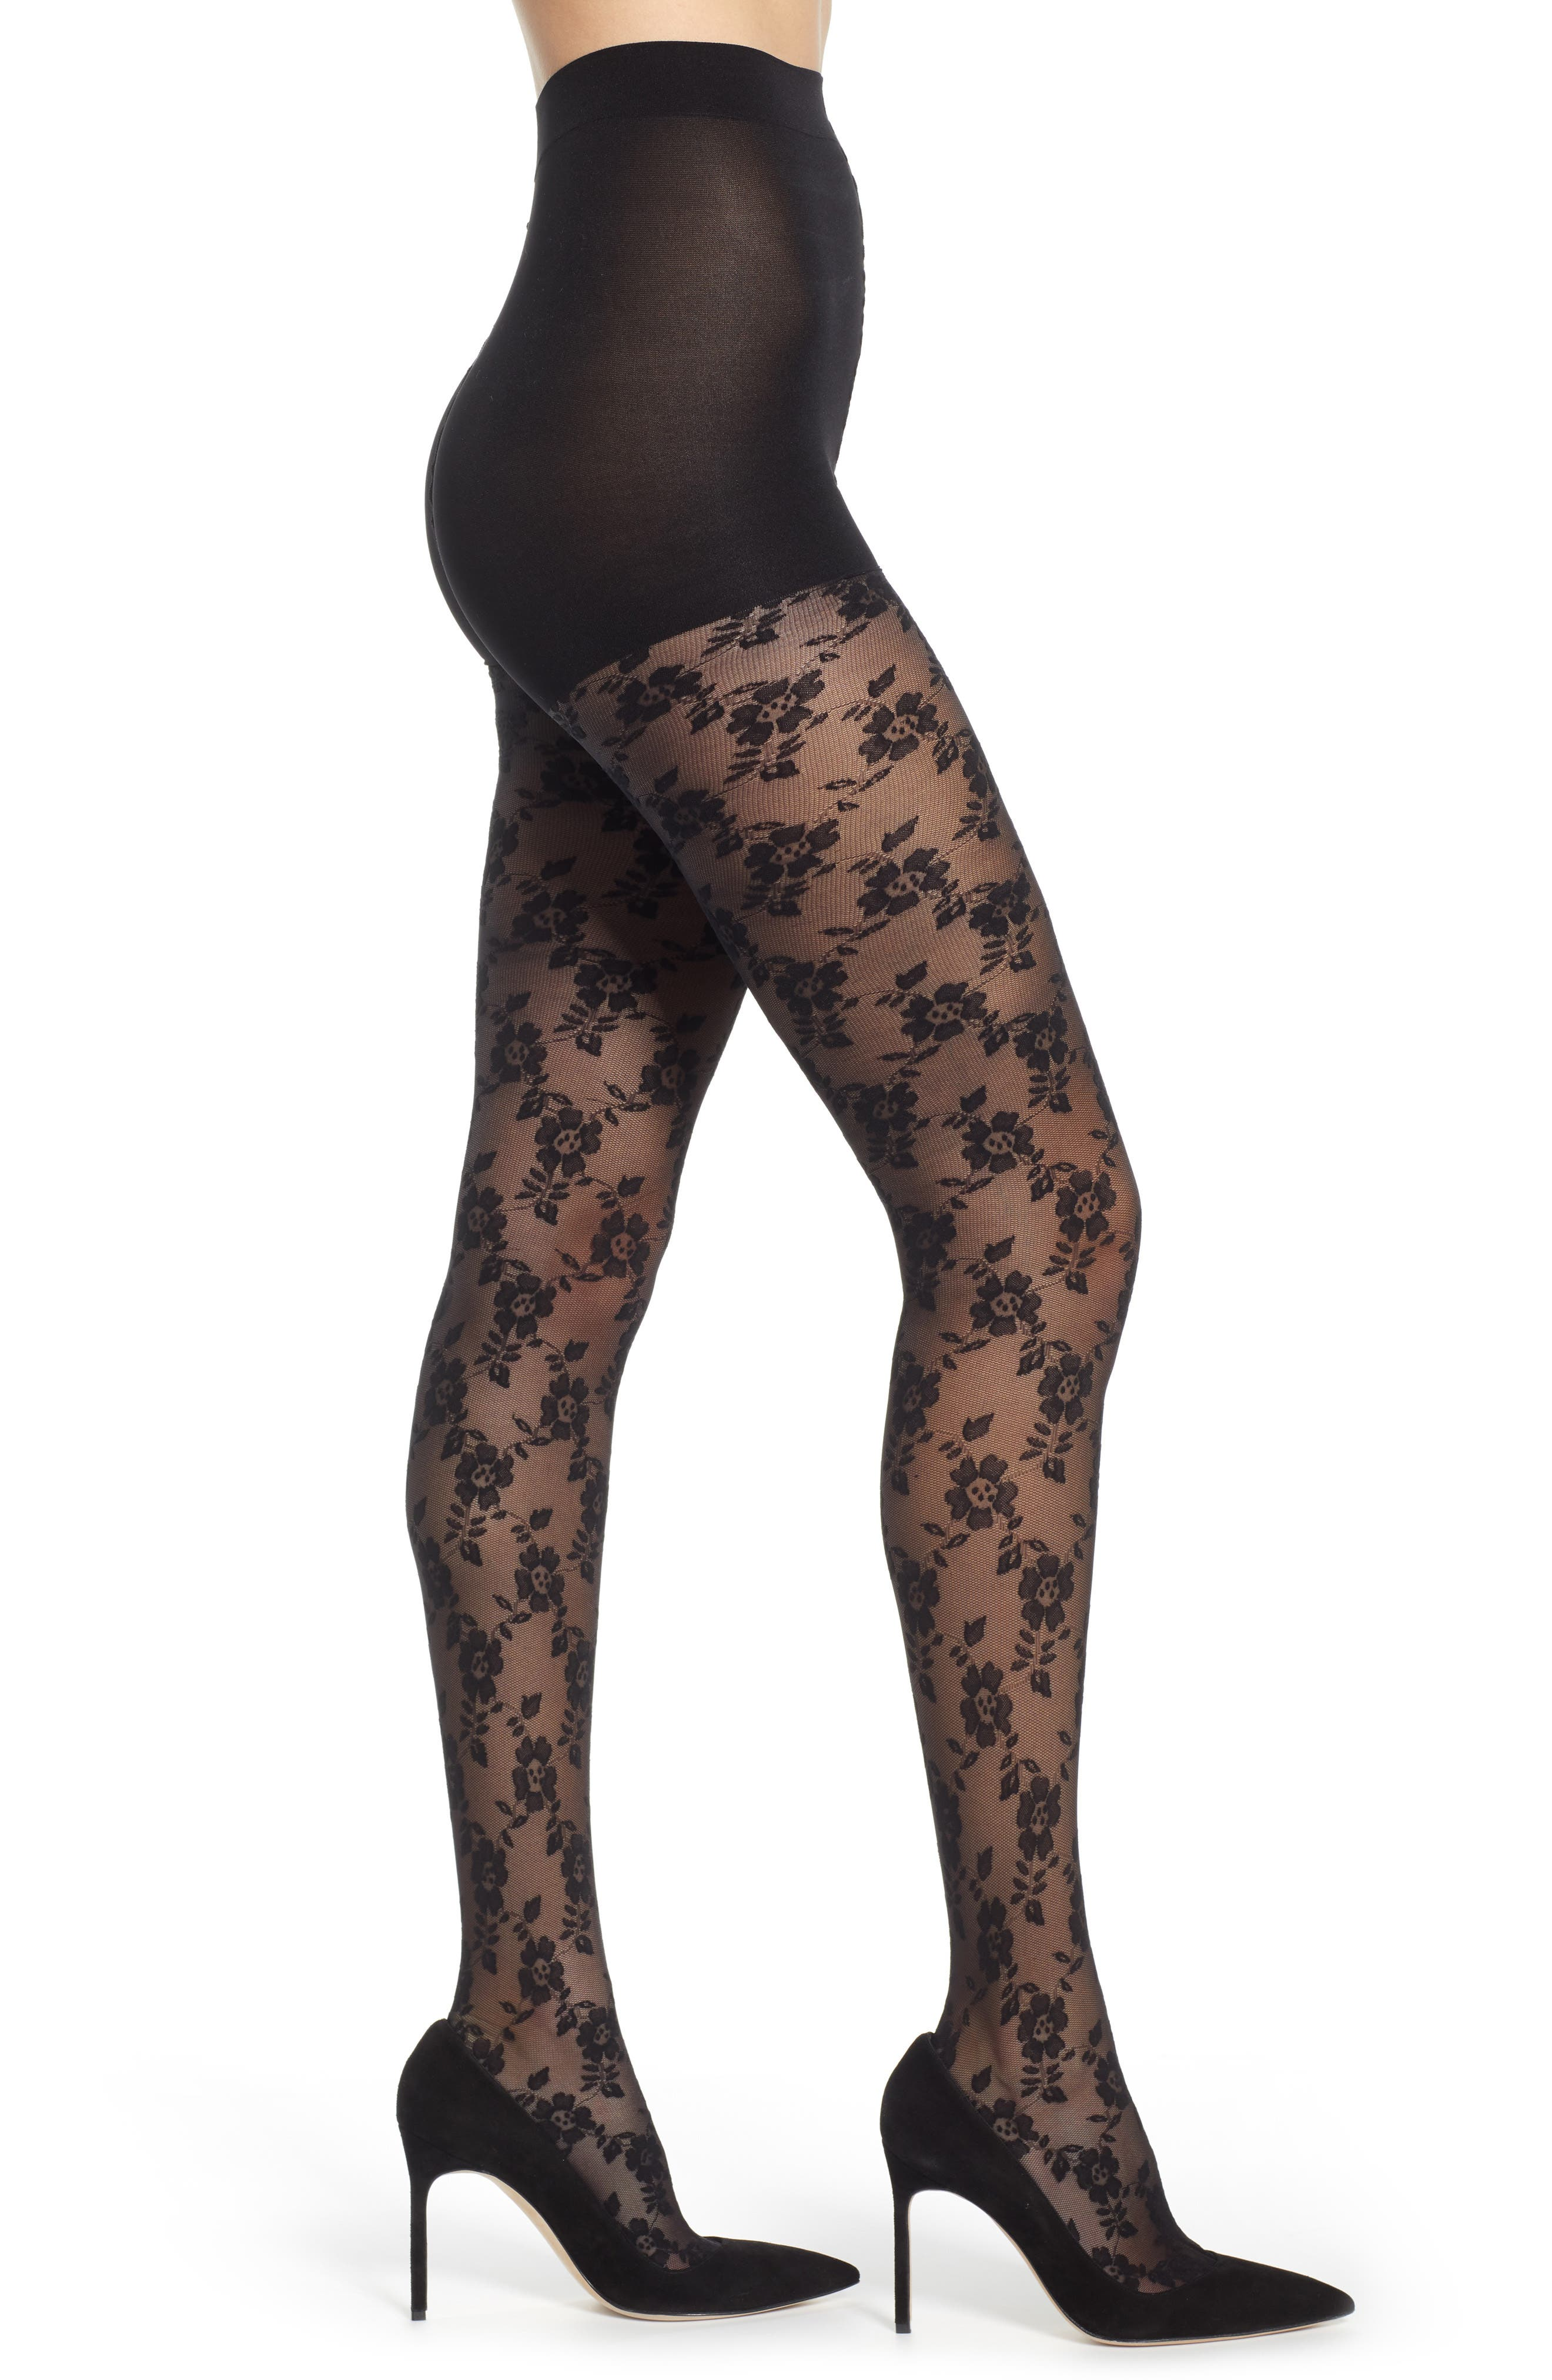 DKNY, Floral Lace Sheer Tights, Main thumbnail 1, color, BLACK